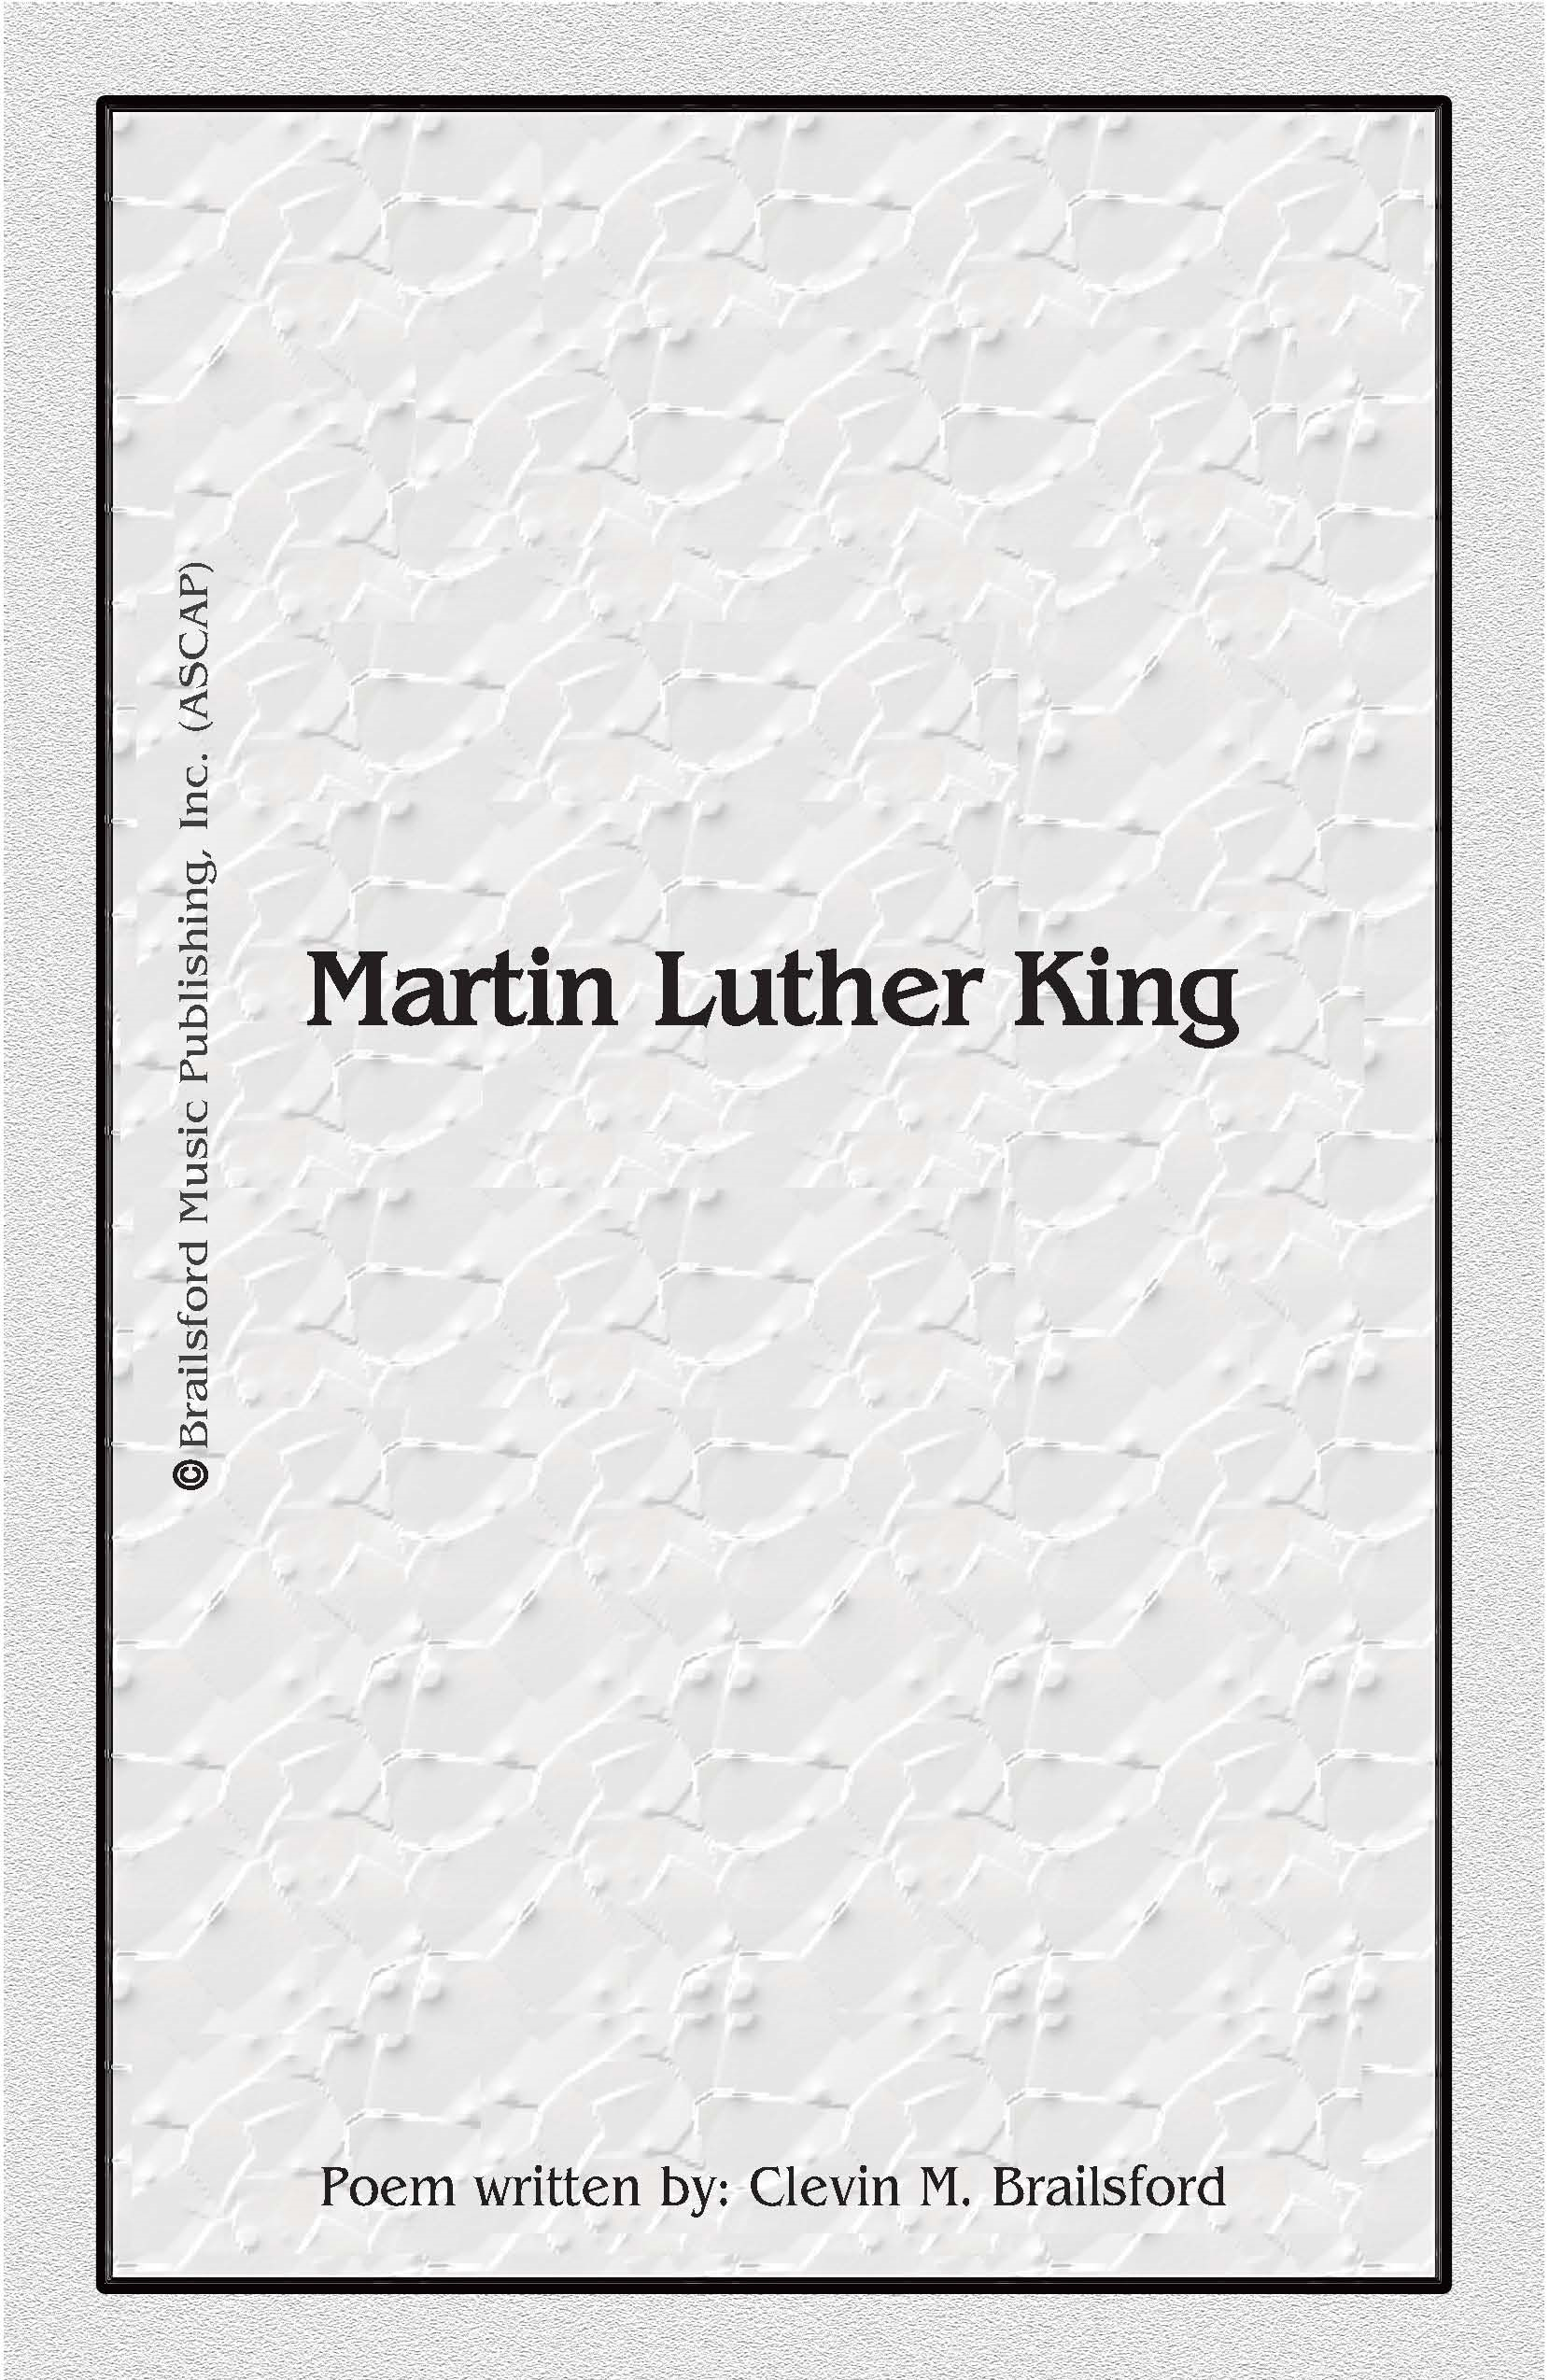 Martin Luther King: King By: Clevin M. Brailsford